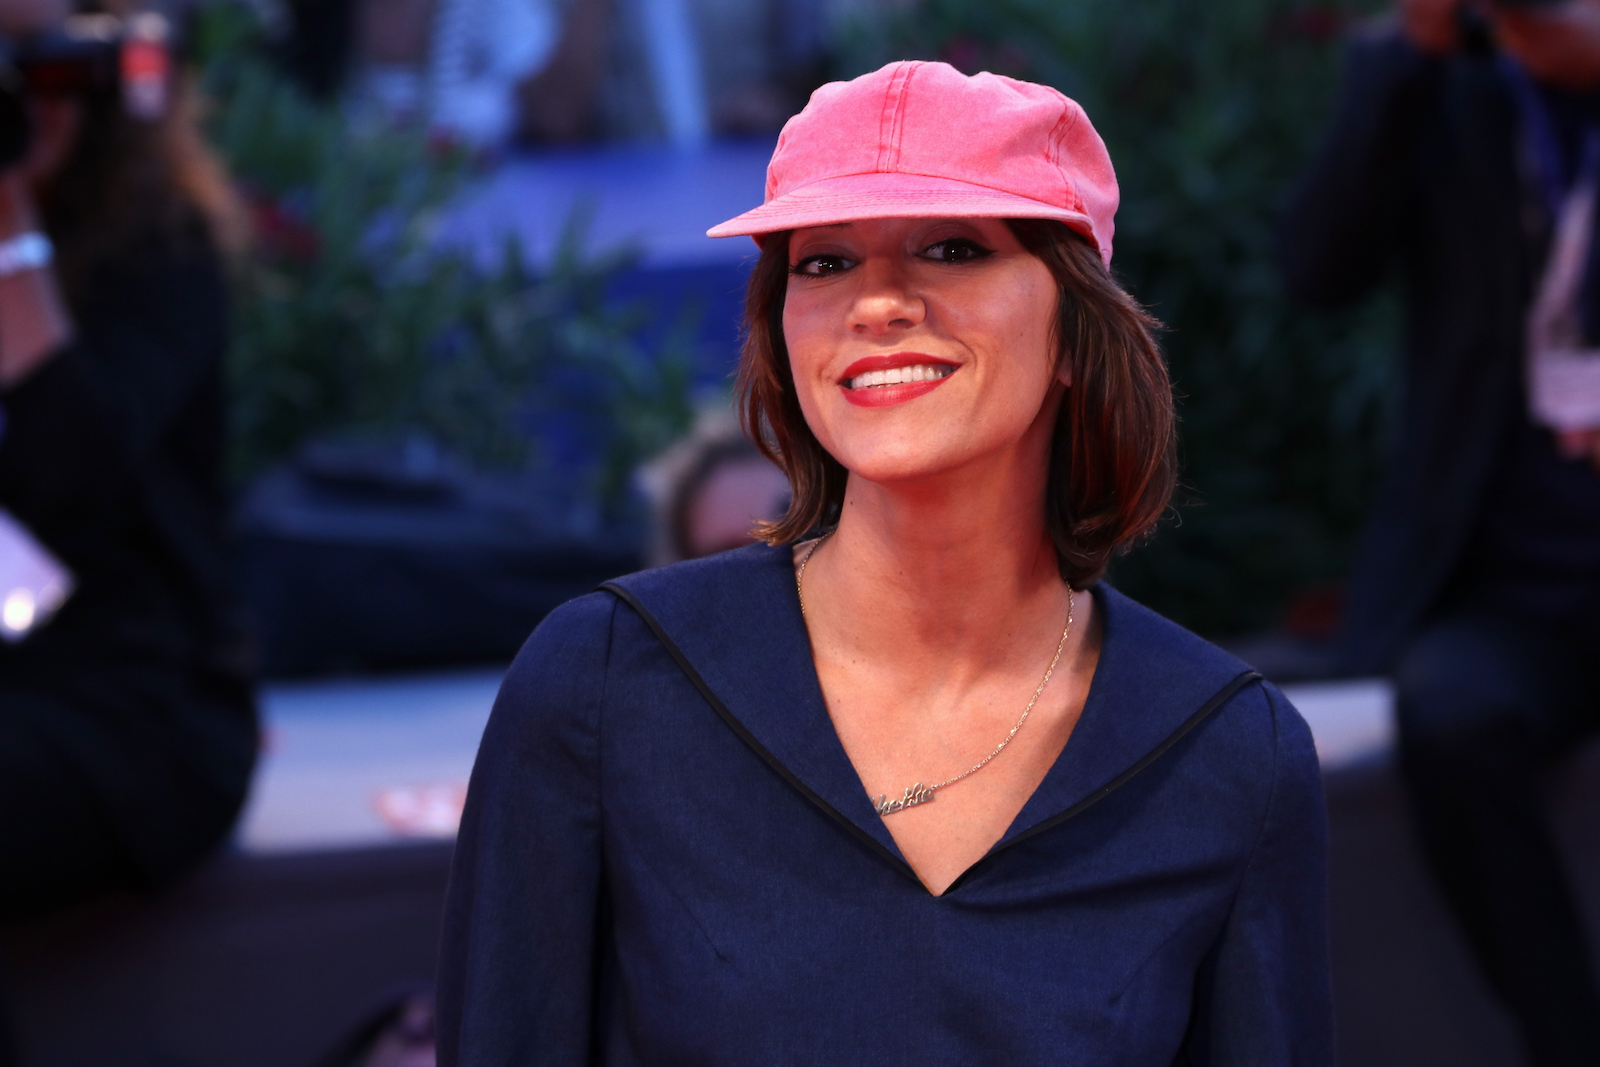 Venezia 2016: Ana Lily Amirpour sul red carpet di The Bad Batch